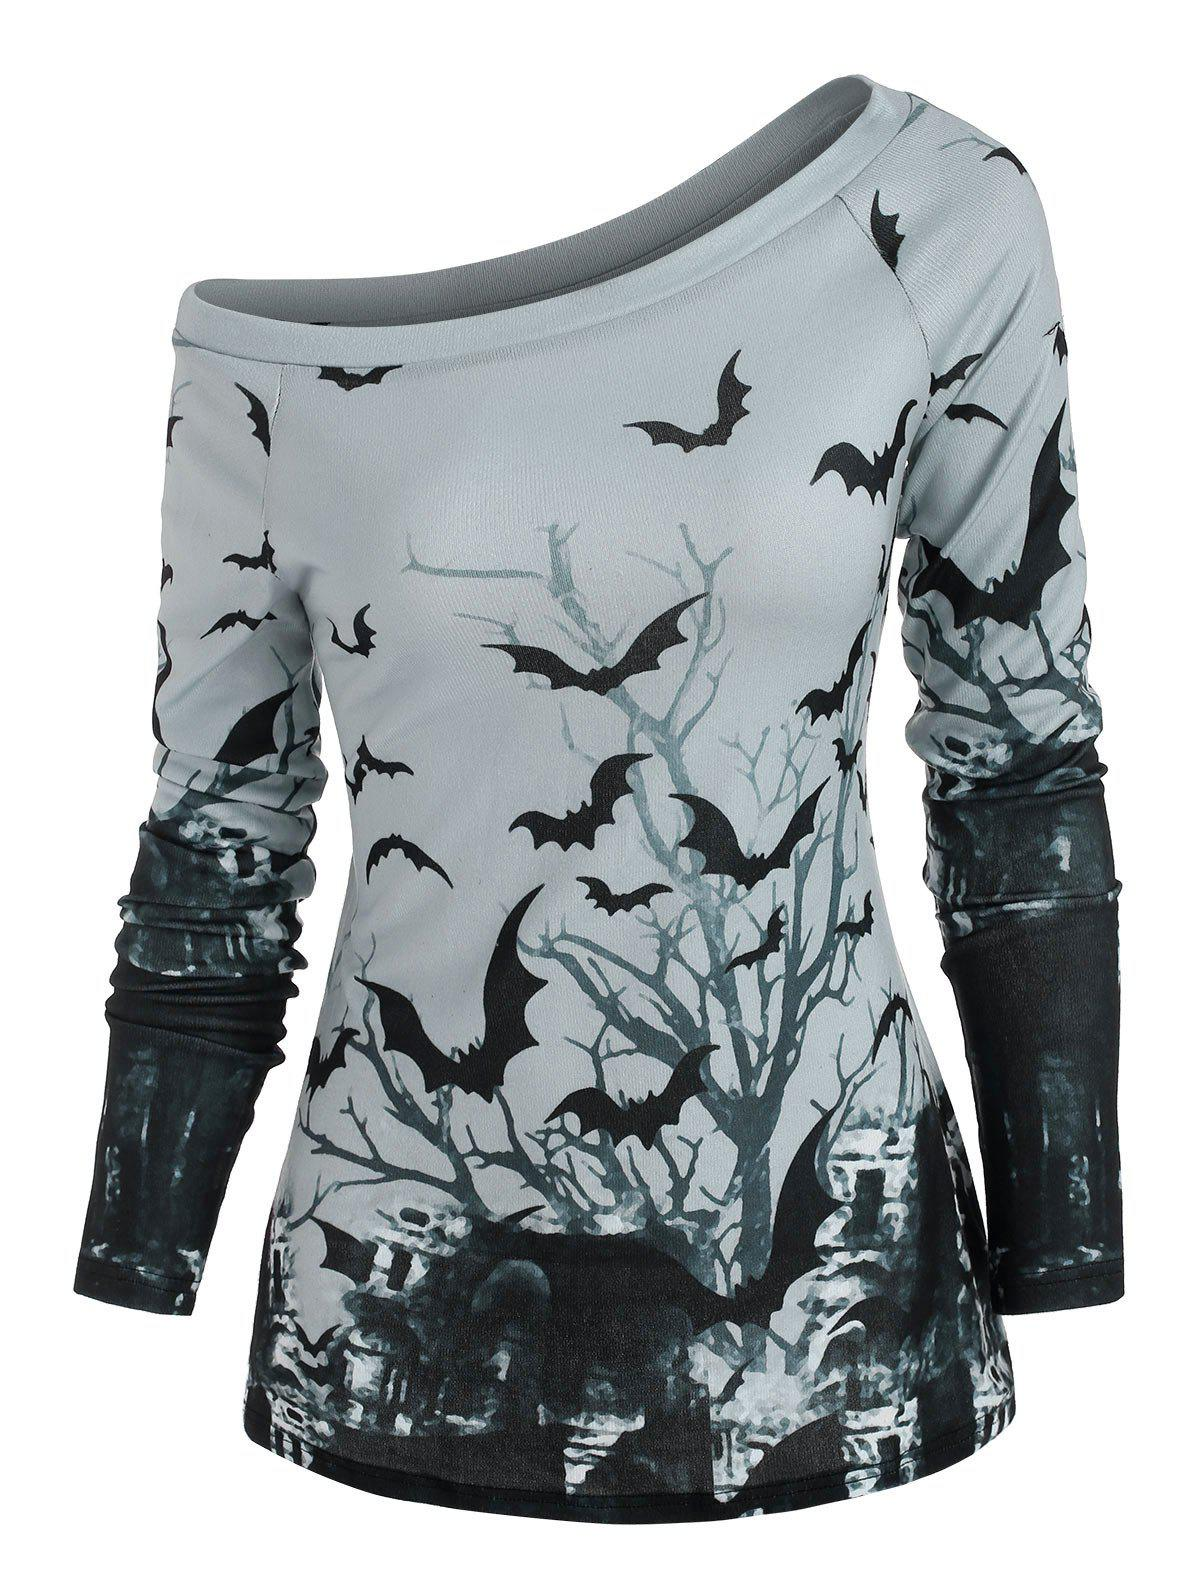 Tree Bat Print One Shoulder Ralgan Sleeve Knitwear - LIGHT GRAY 2XL